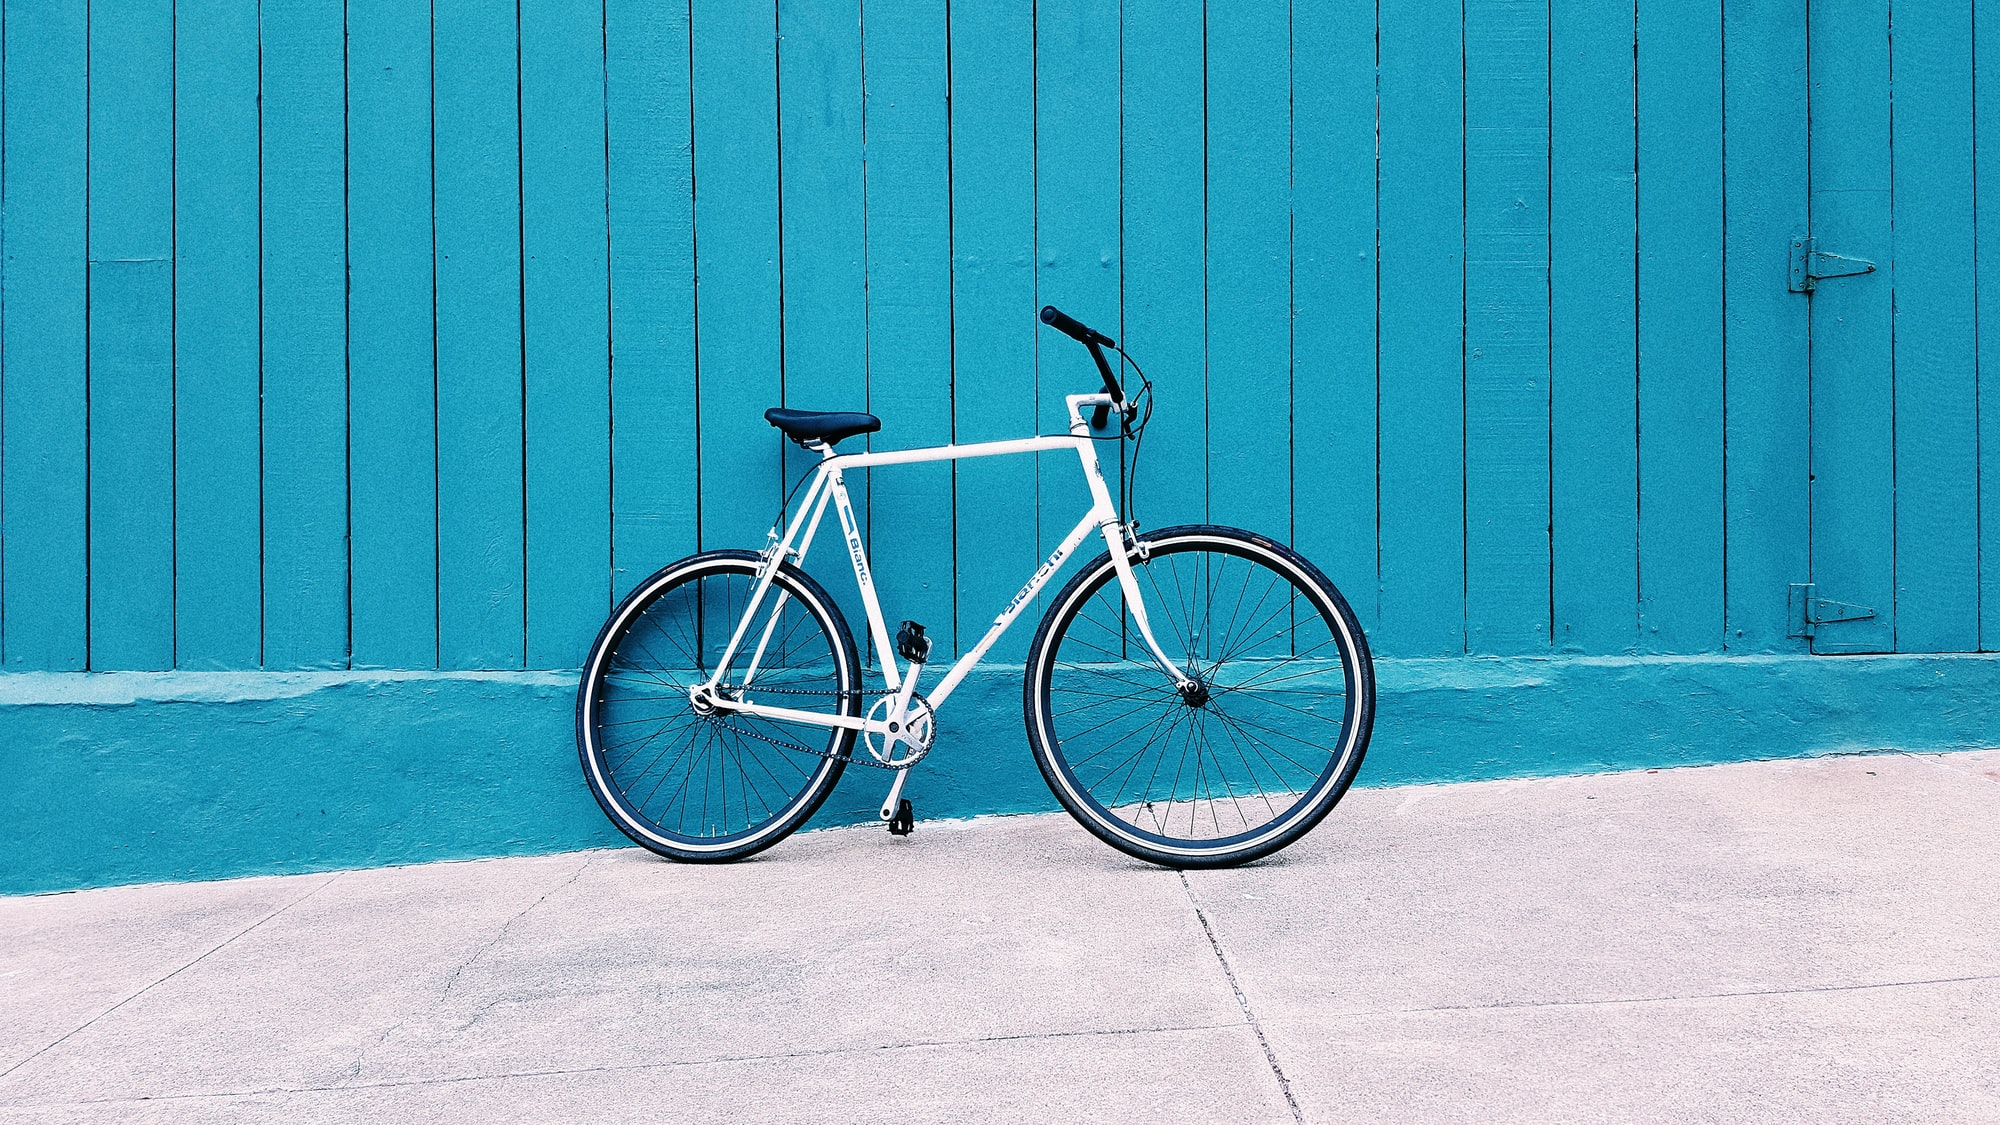 Turn Your Bike Into a Smart Bicycle with Cycomputer